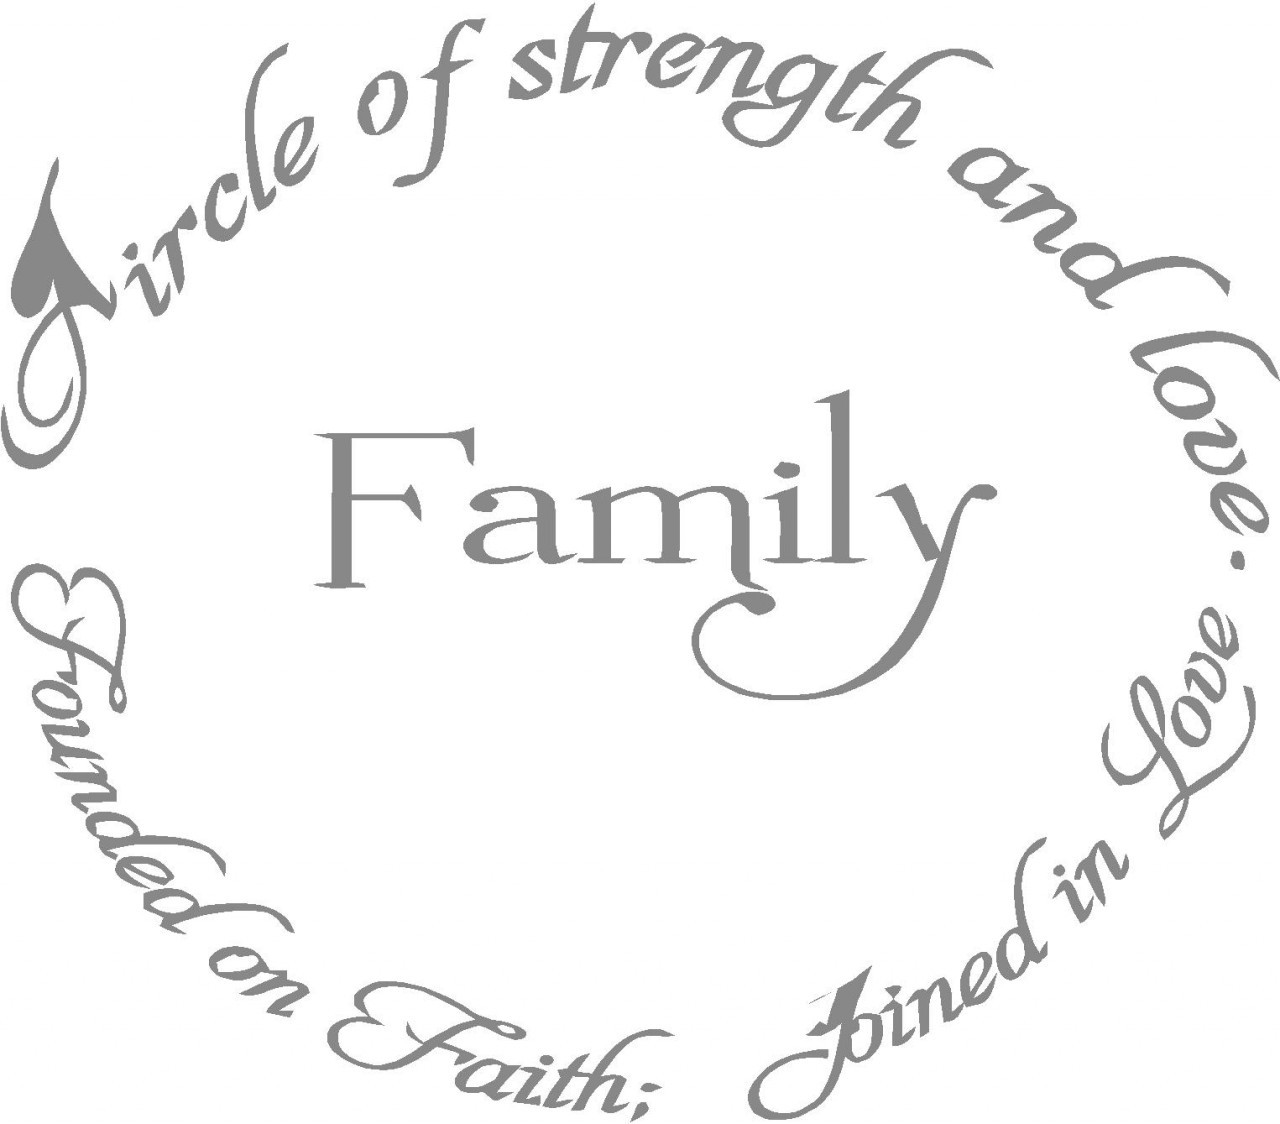 Family Love Quotes: Bible Quotes About Family Strength. QuotesGram